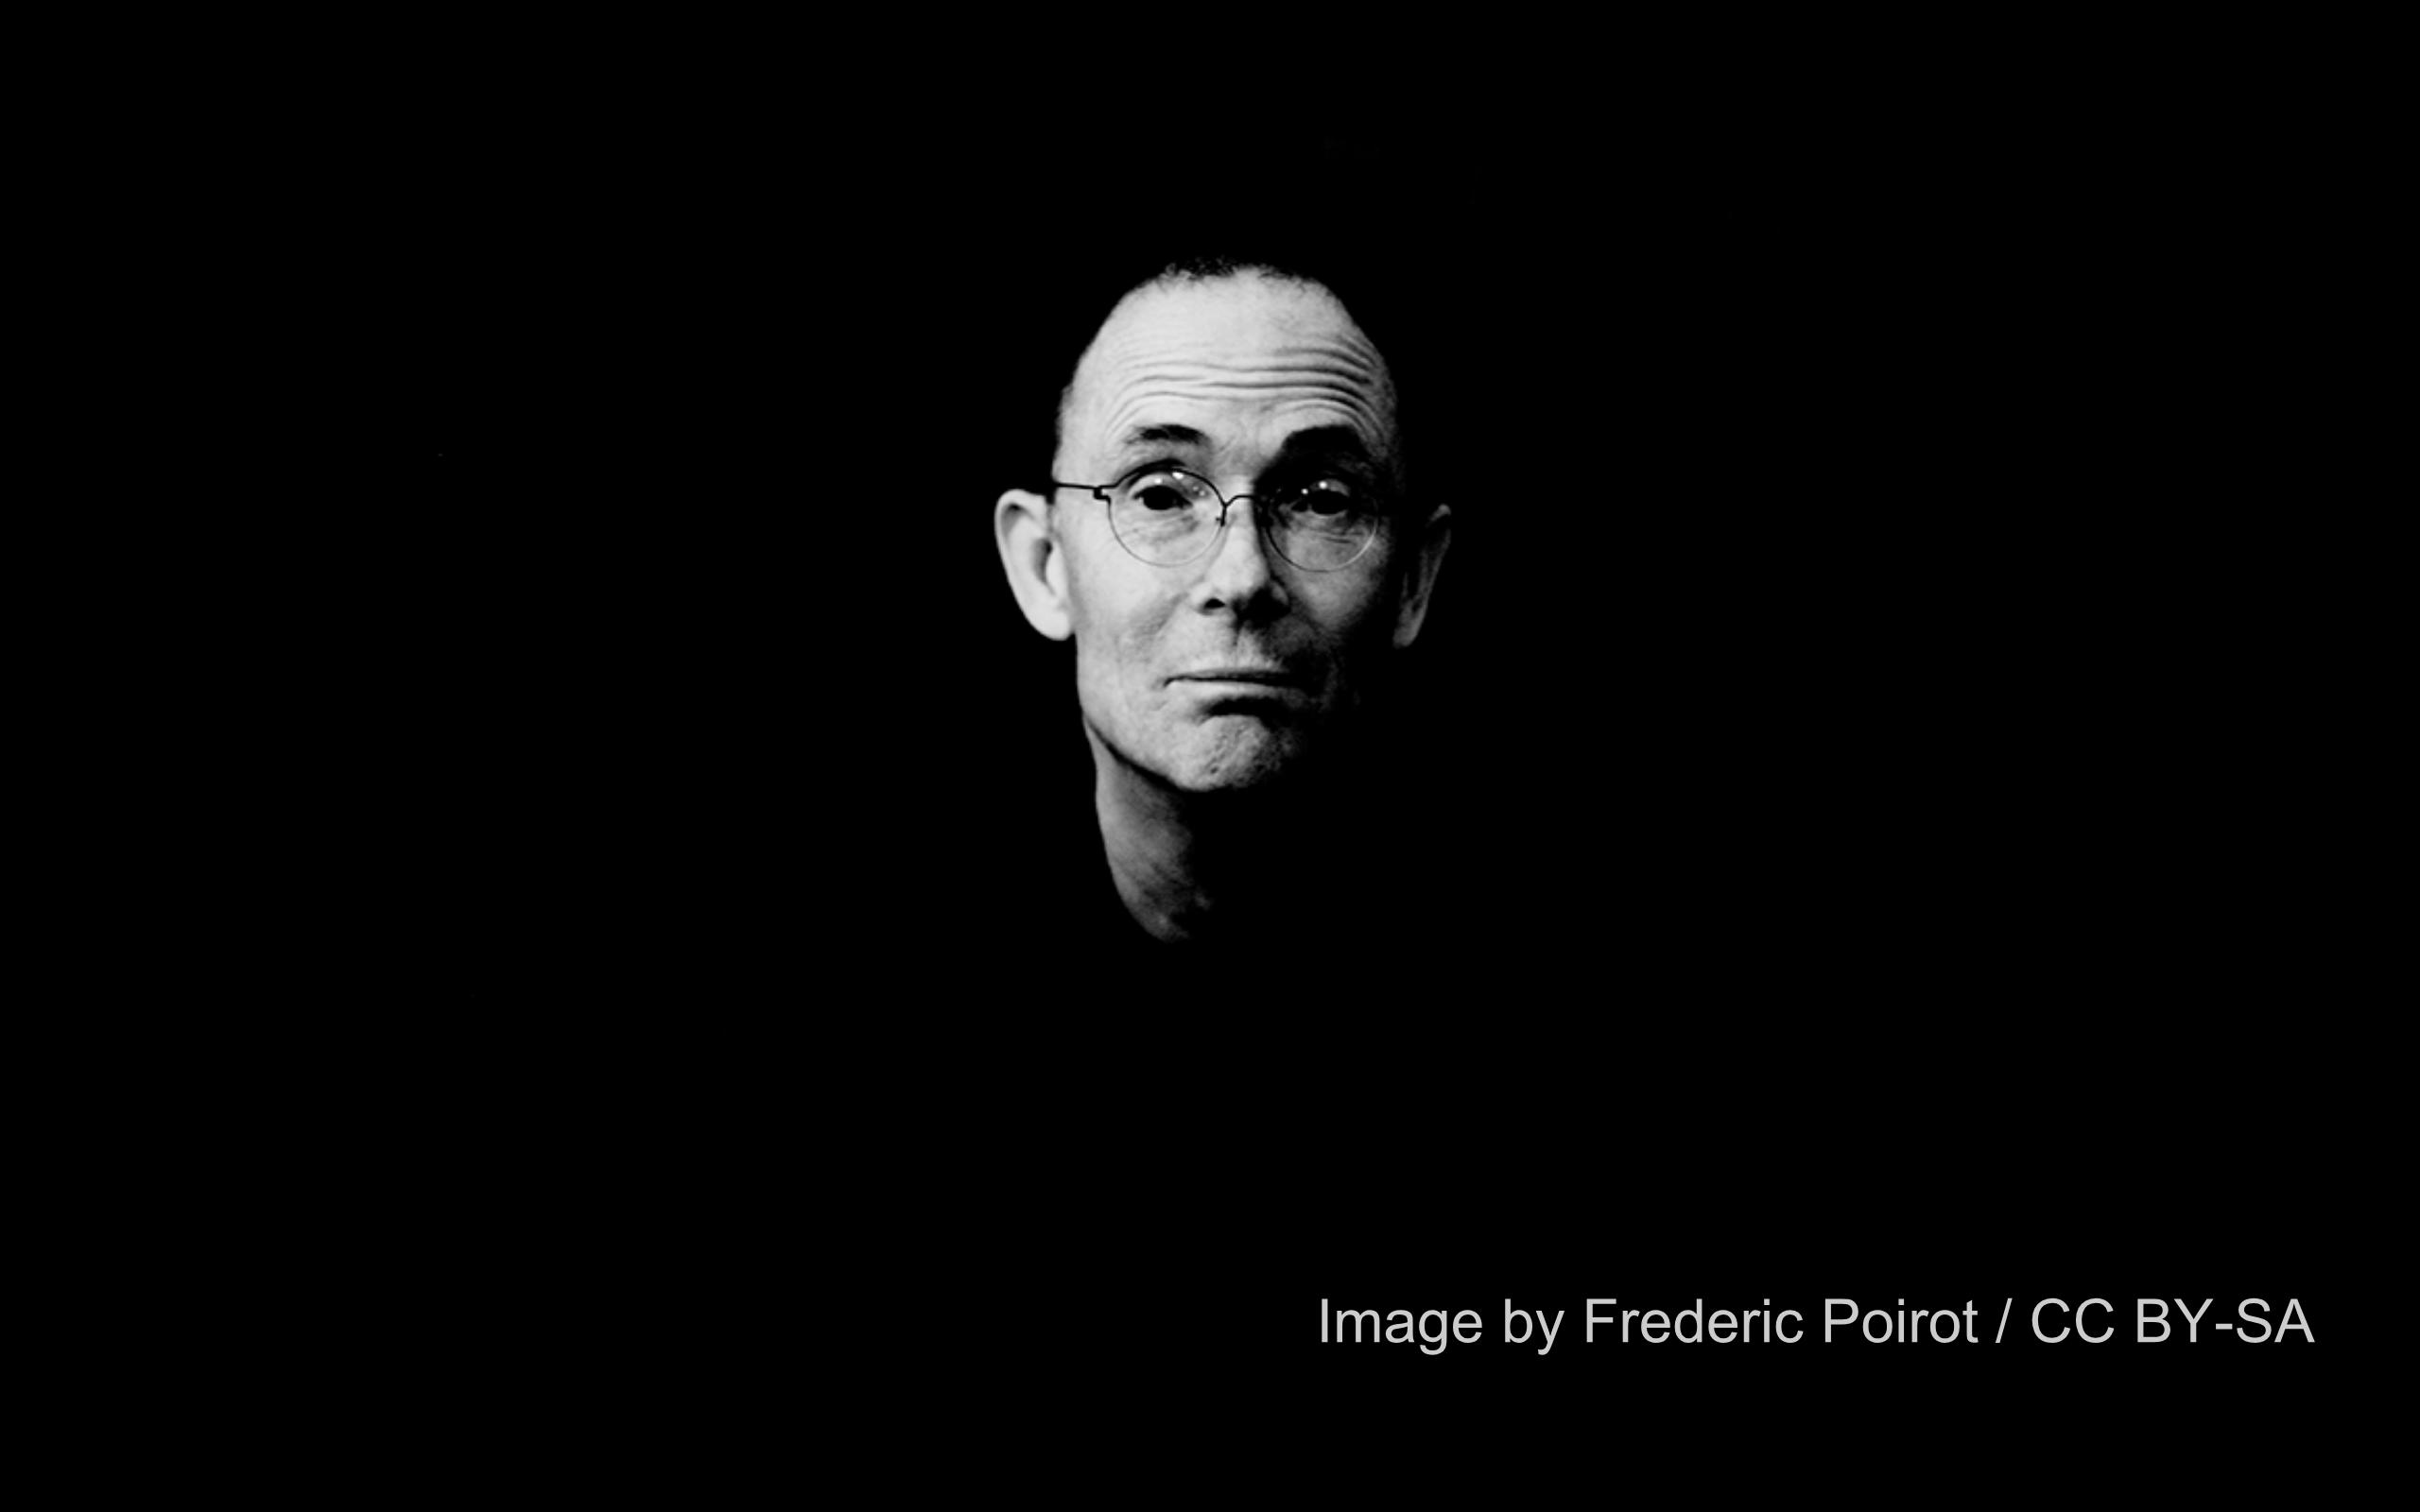 William Gibson portrait